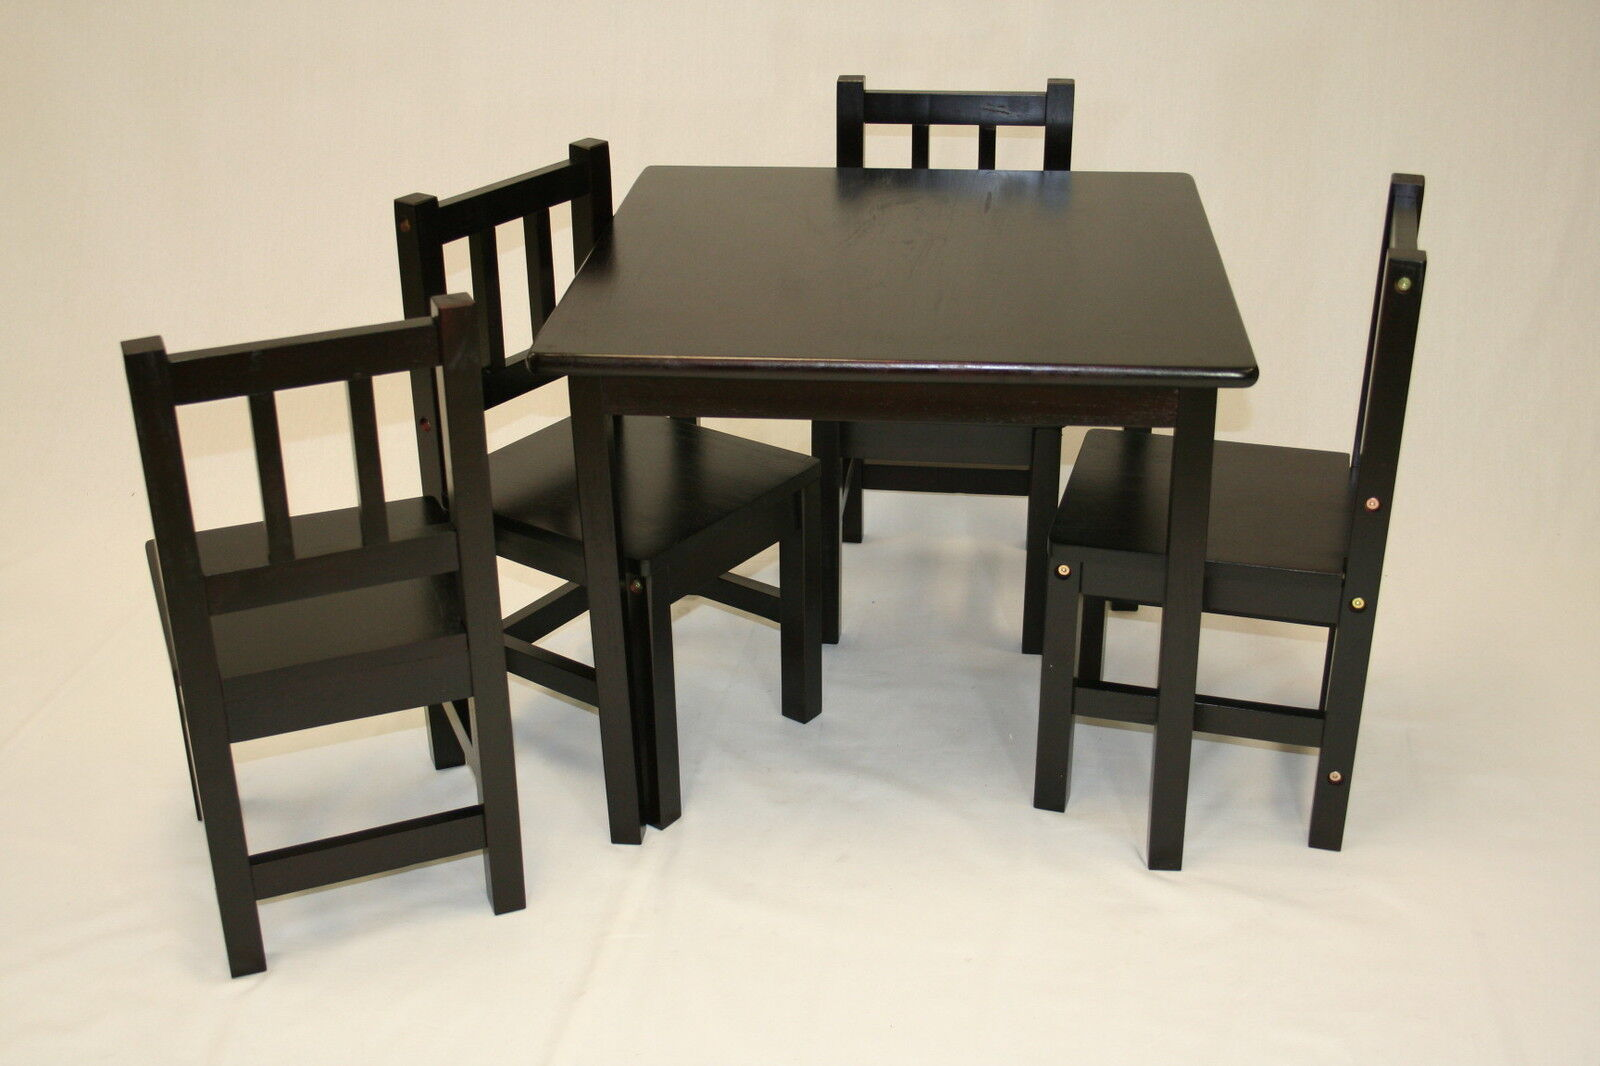 Sofa Furniture Kitchen Childrens Wooden Table And